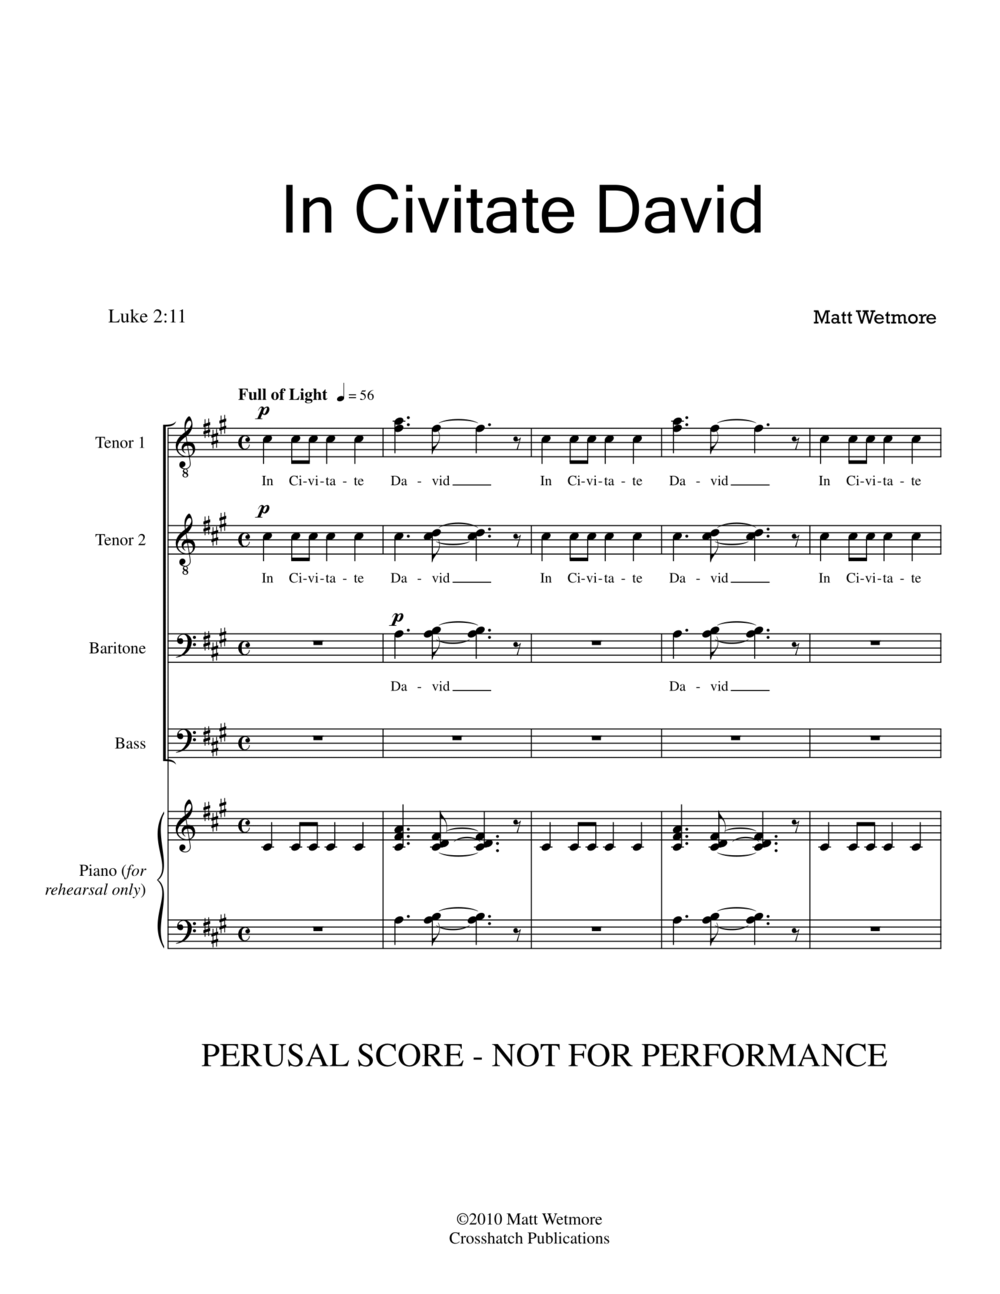 In Civitate David Perusal-3.png